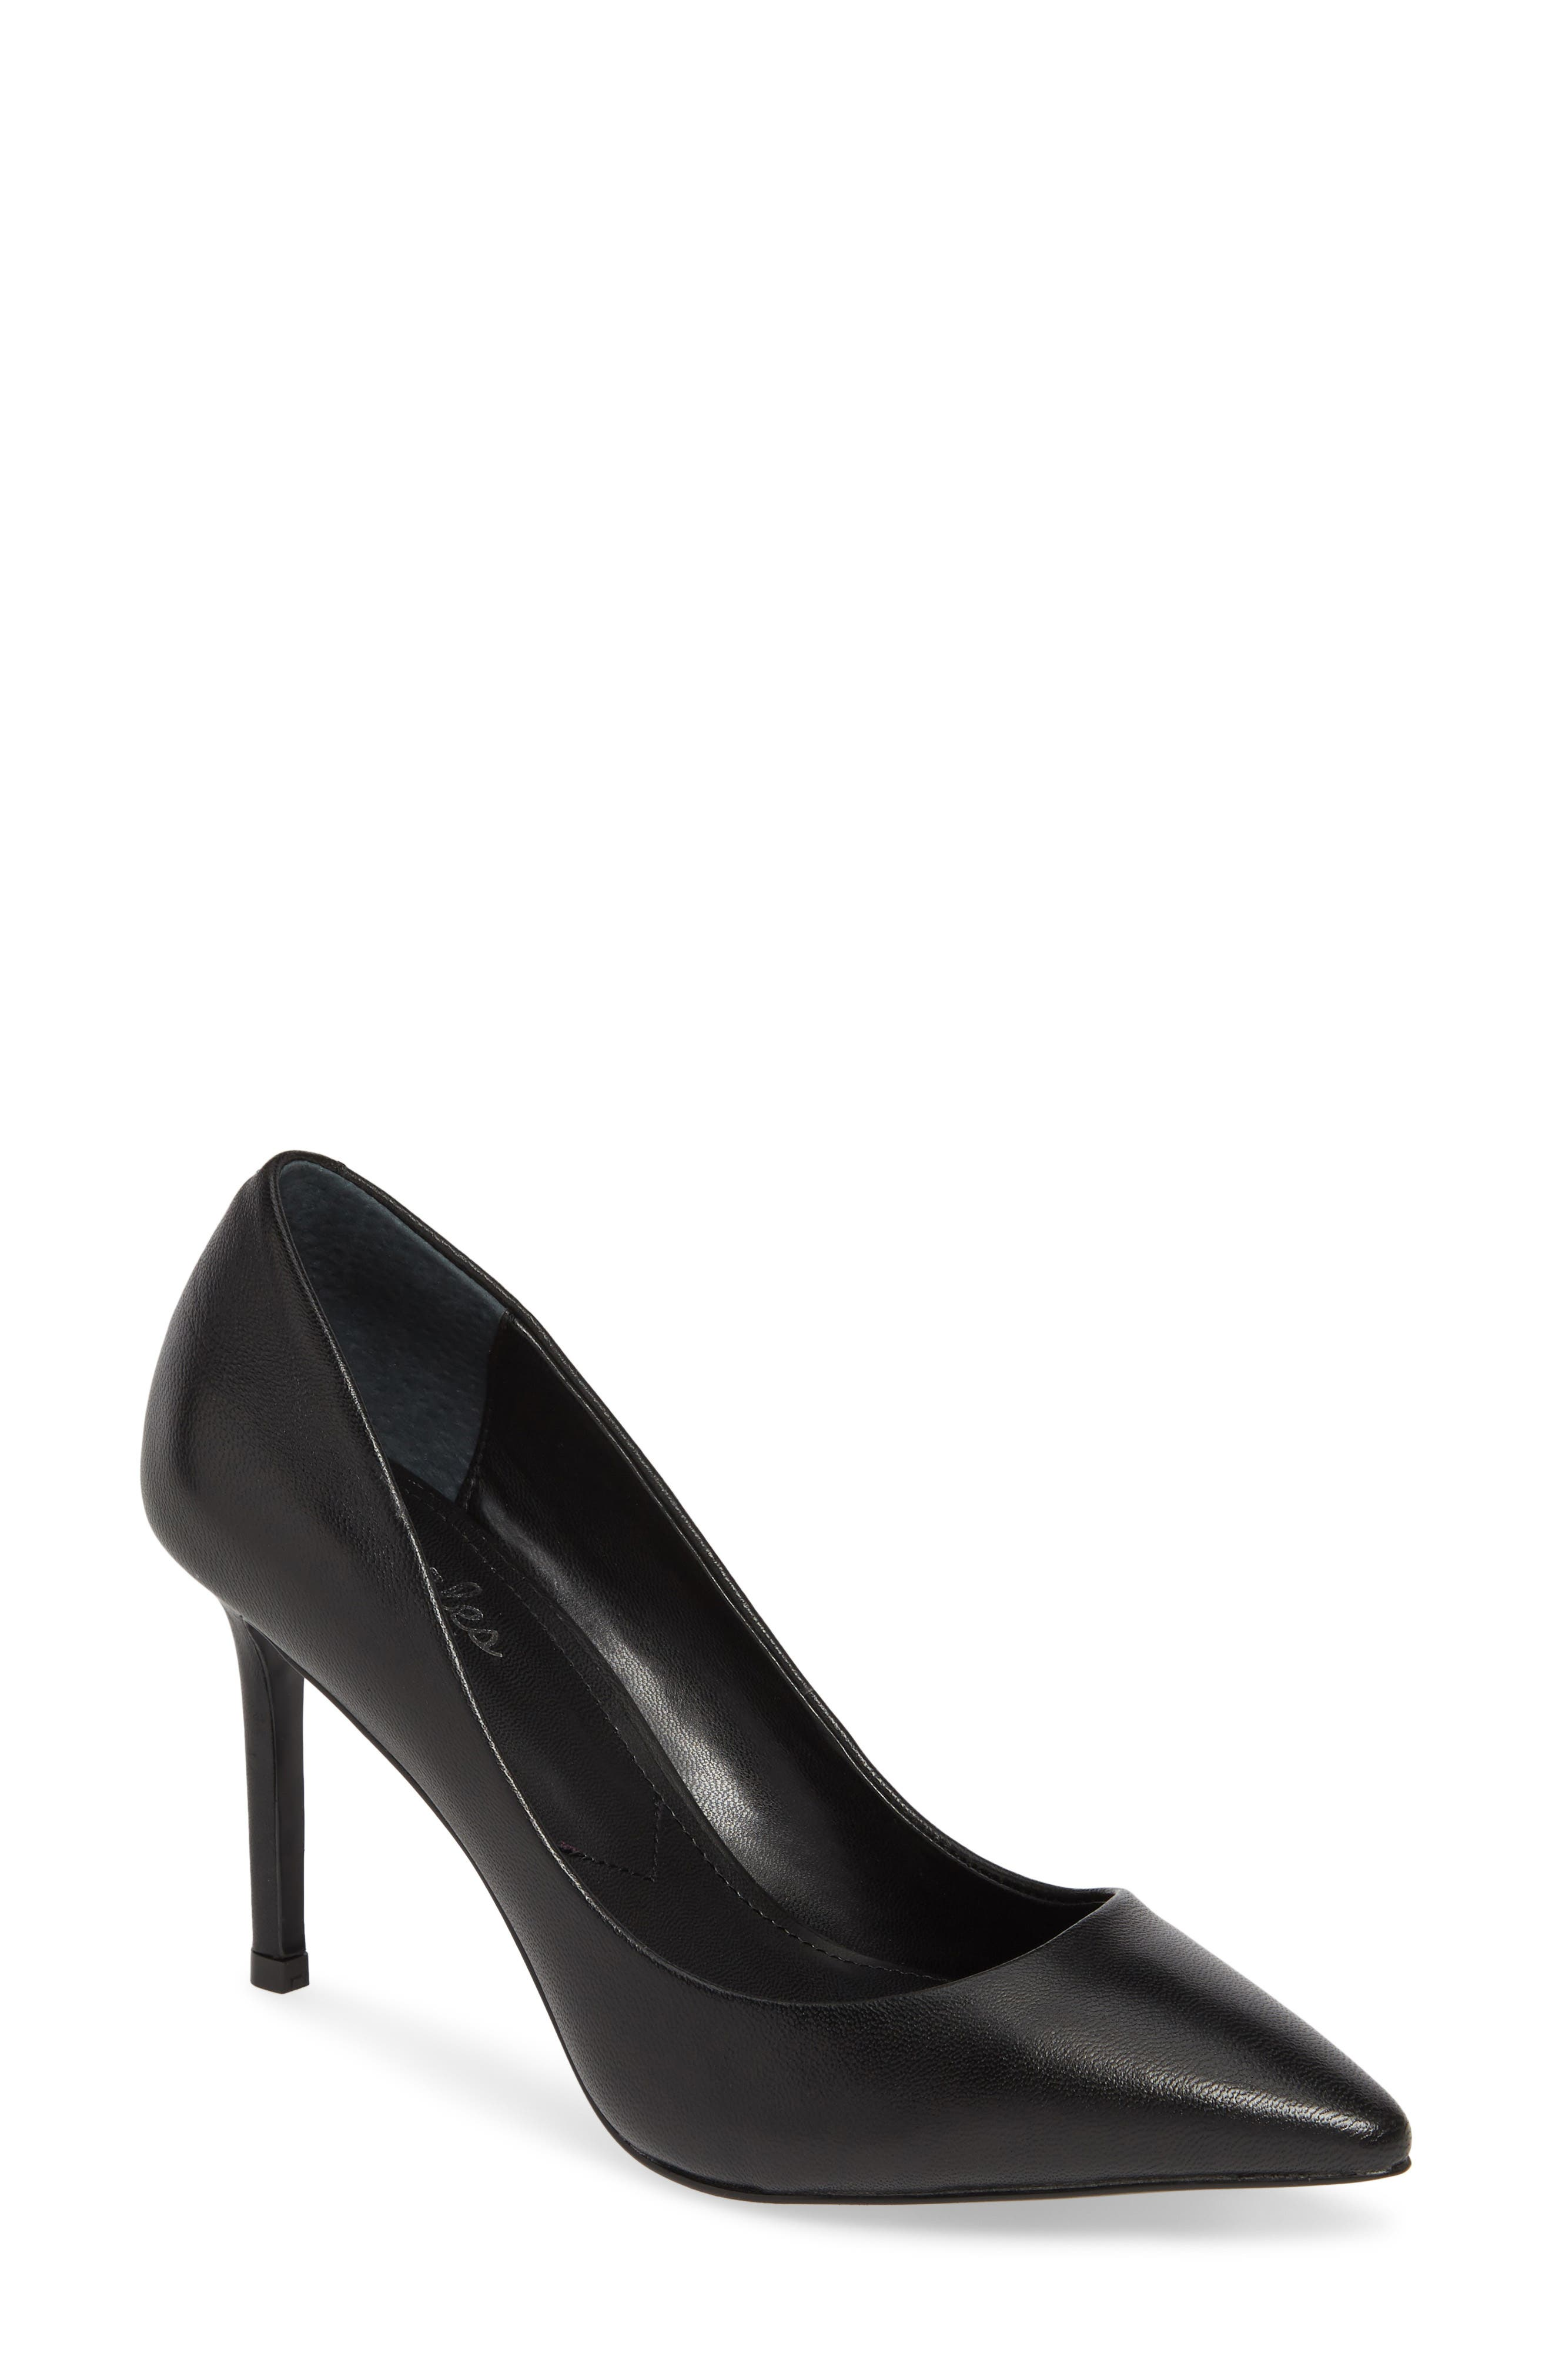 CHARLES BY CHARLES DAVID,                             Vicky Pump,                             Main thumbnail 1, color,                             BLACK LEATHER